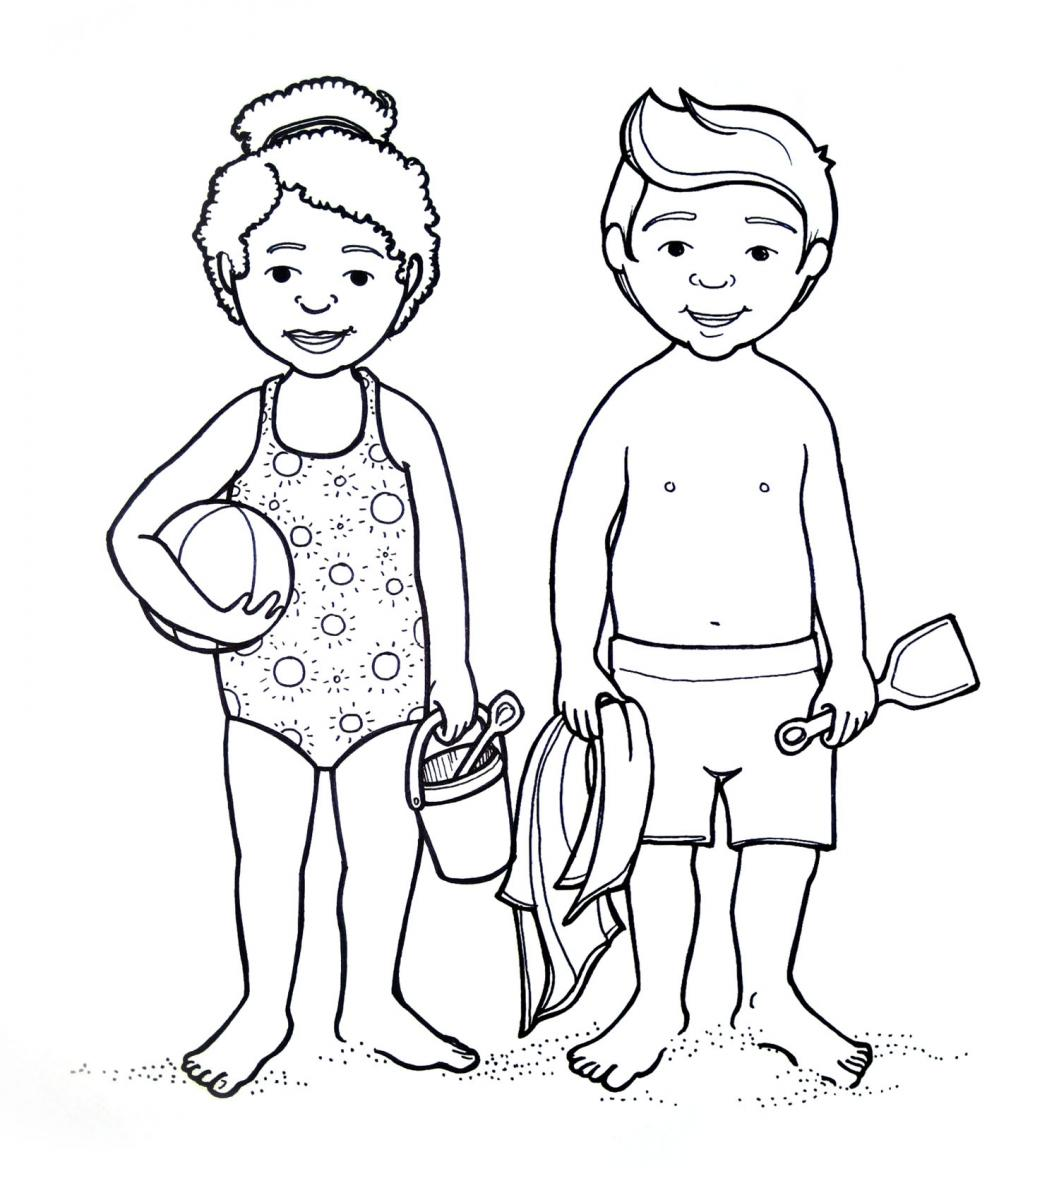 1059x1200 Body Coloring Page With Parts Pages Home Human Of For Outline